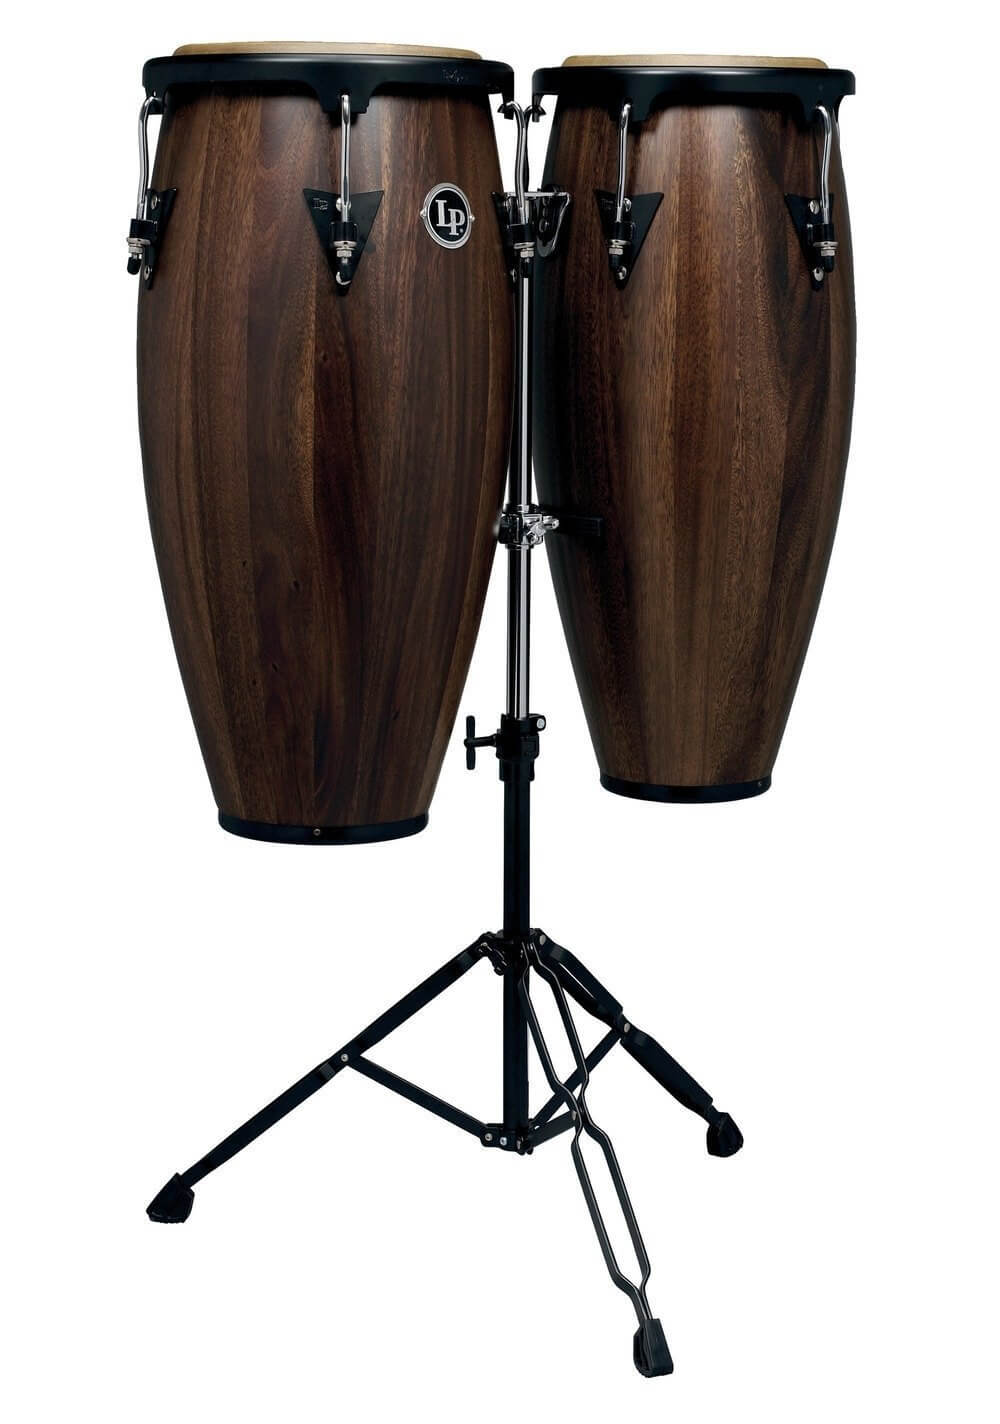 Set Congas Latin Percussion Lpa647 10-11 Walnut